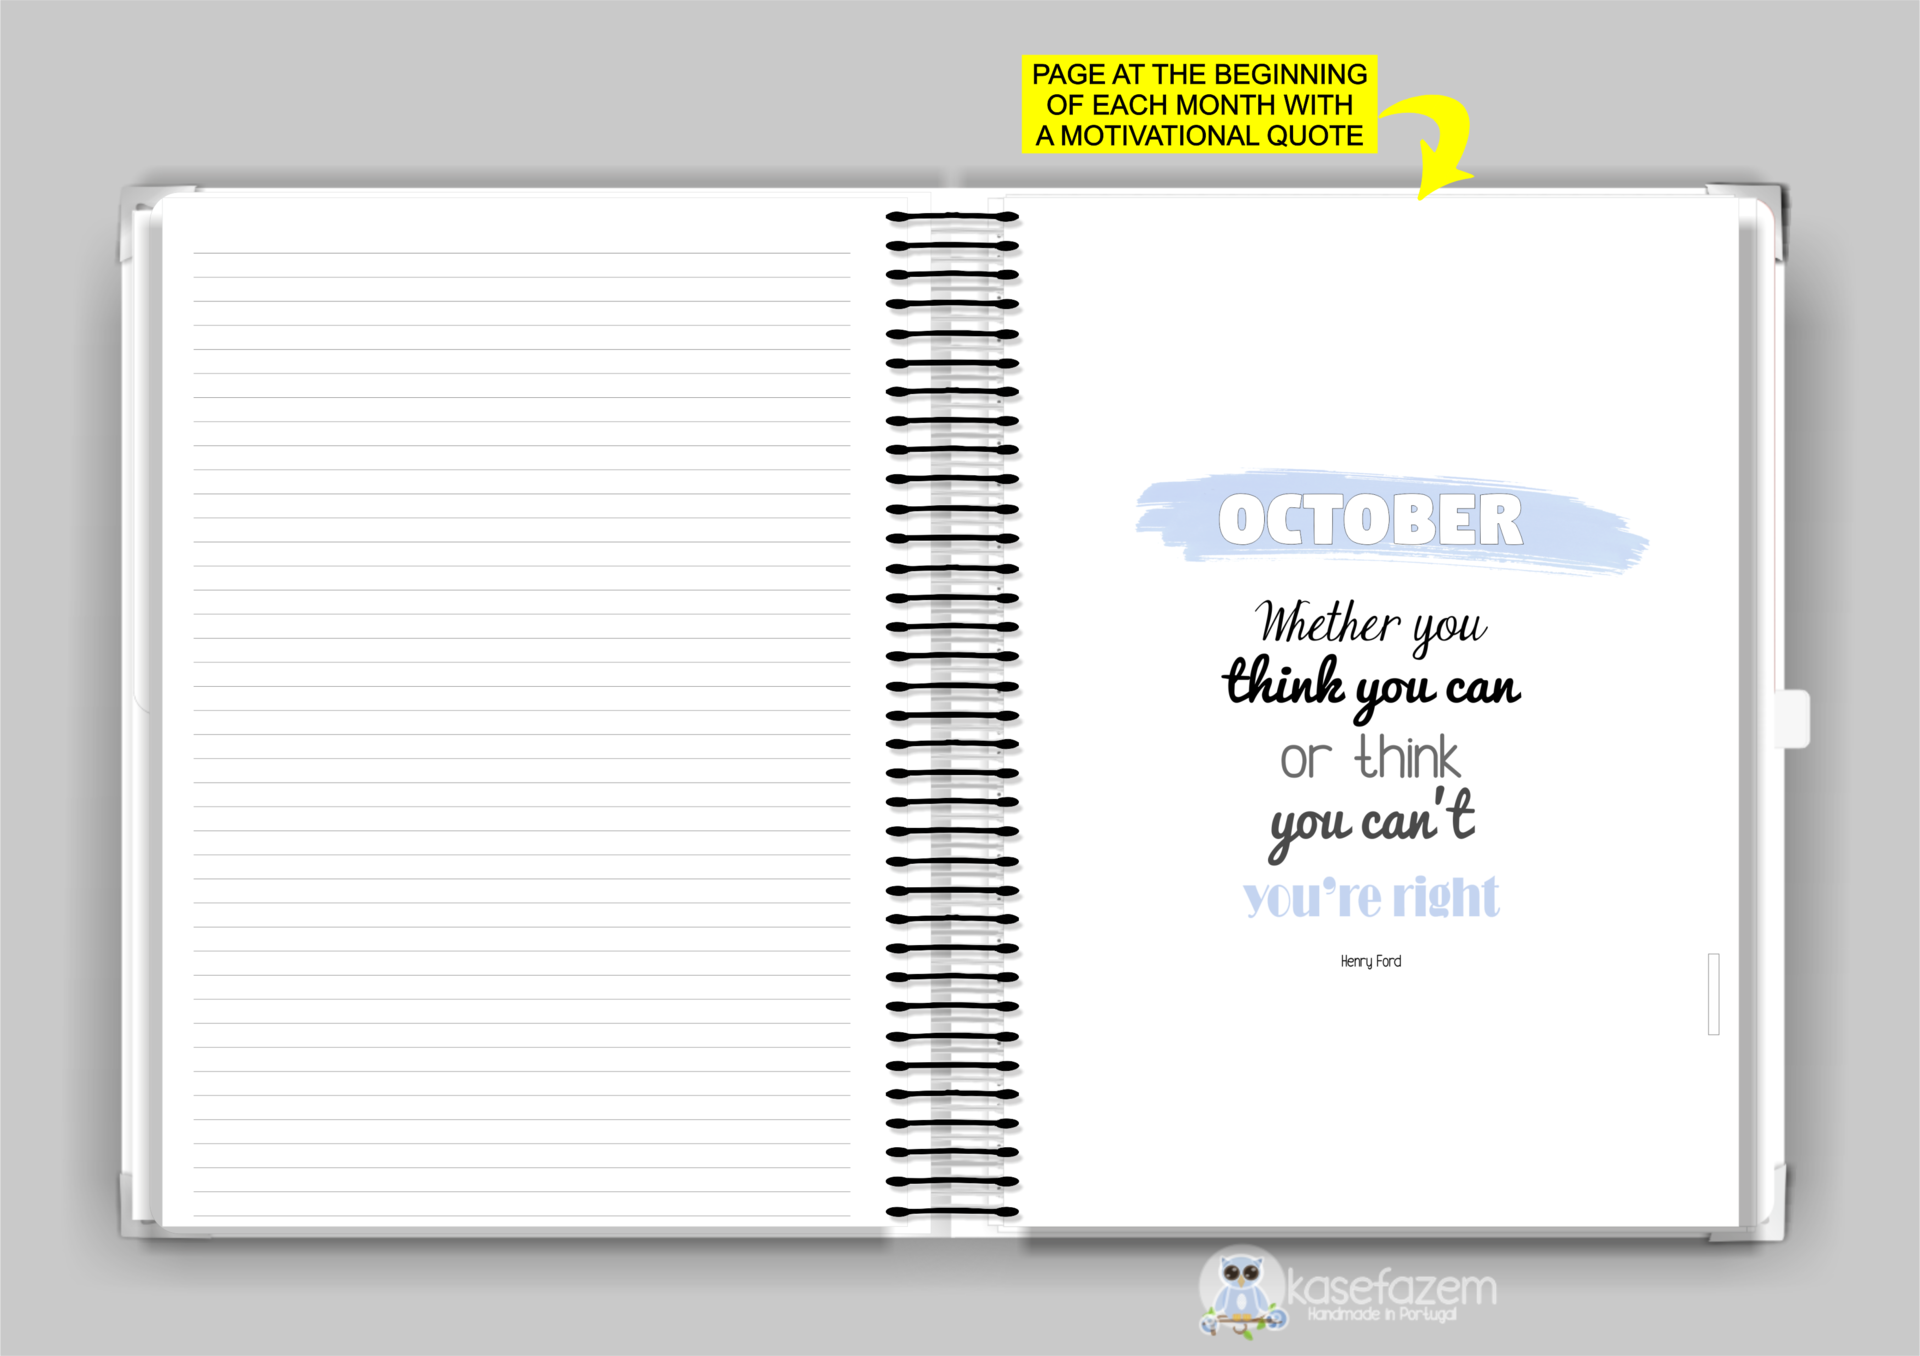 kasefazem personalized planner  motivational quote per month